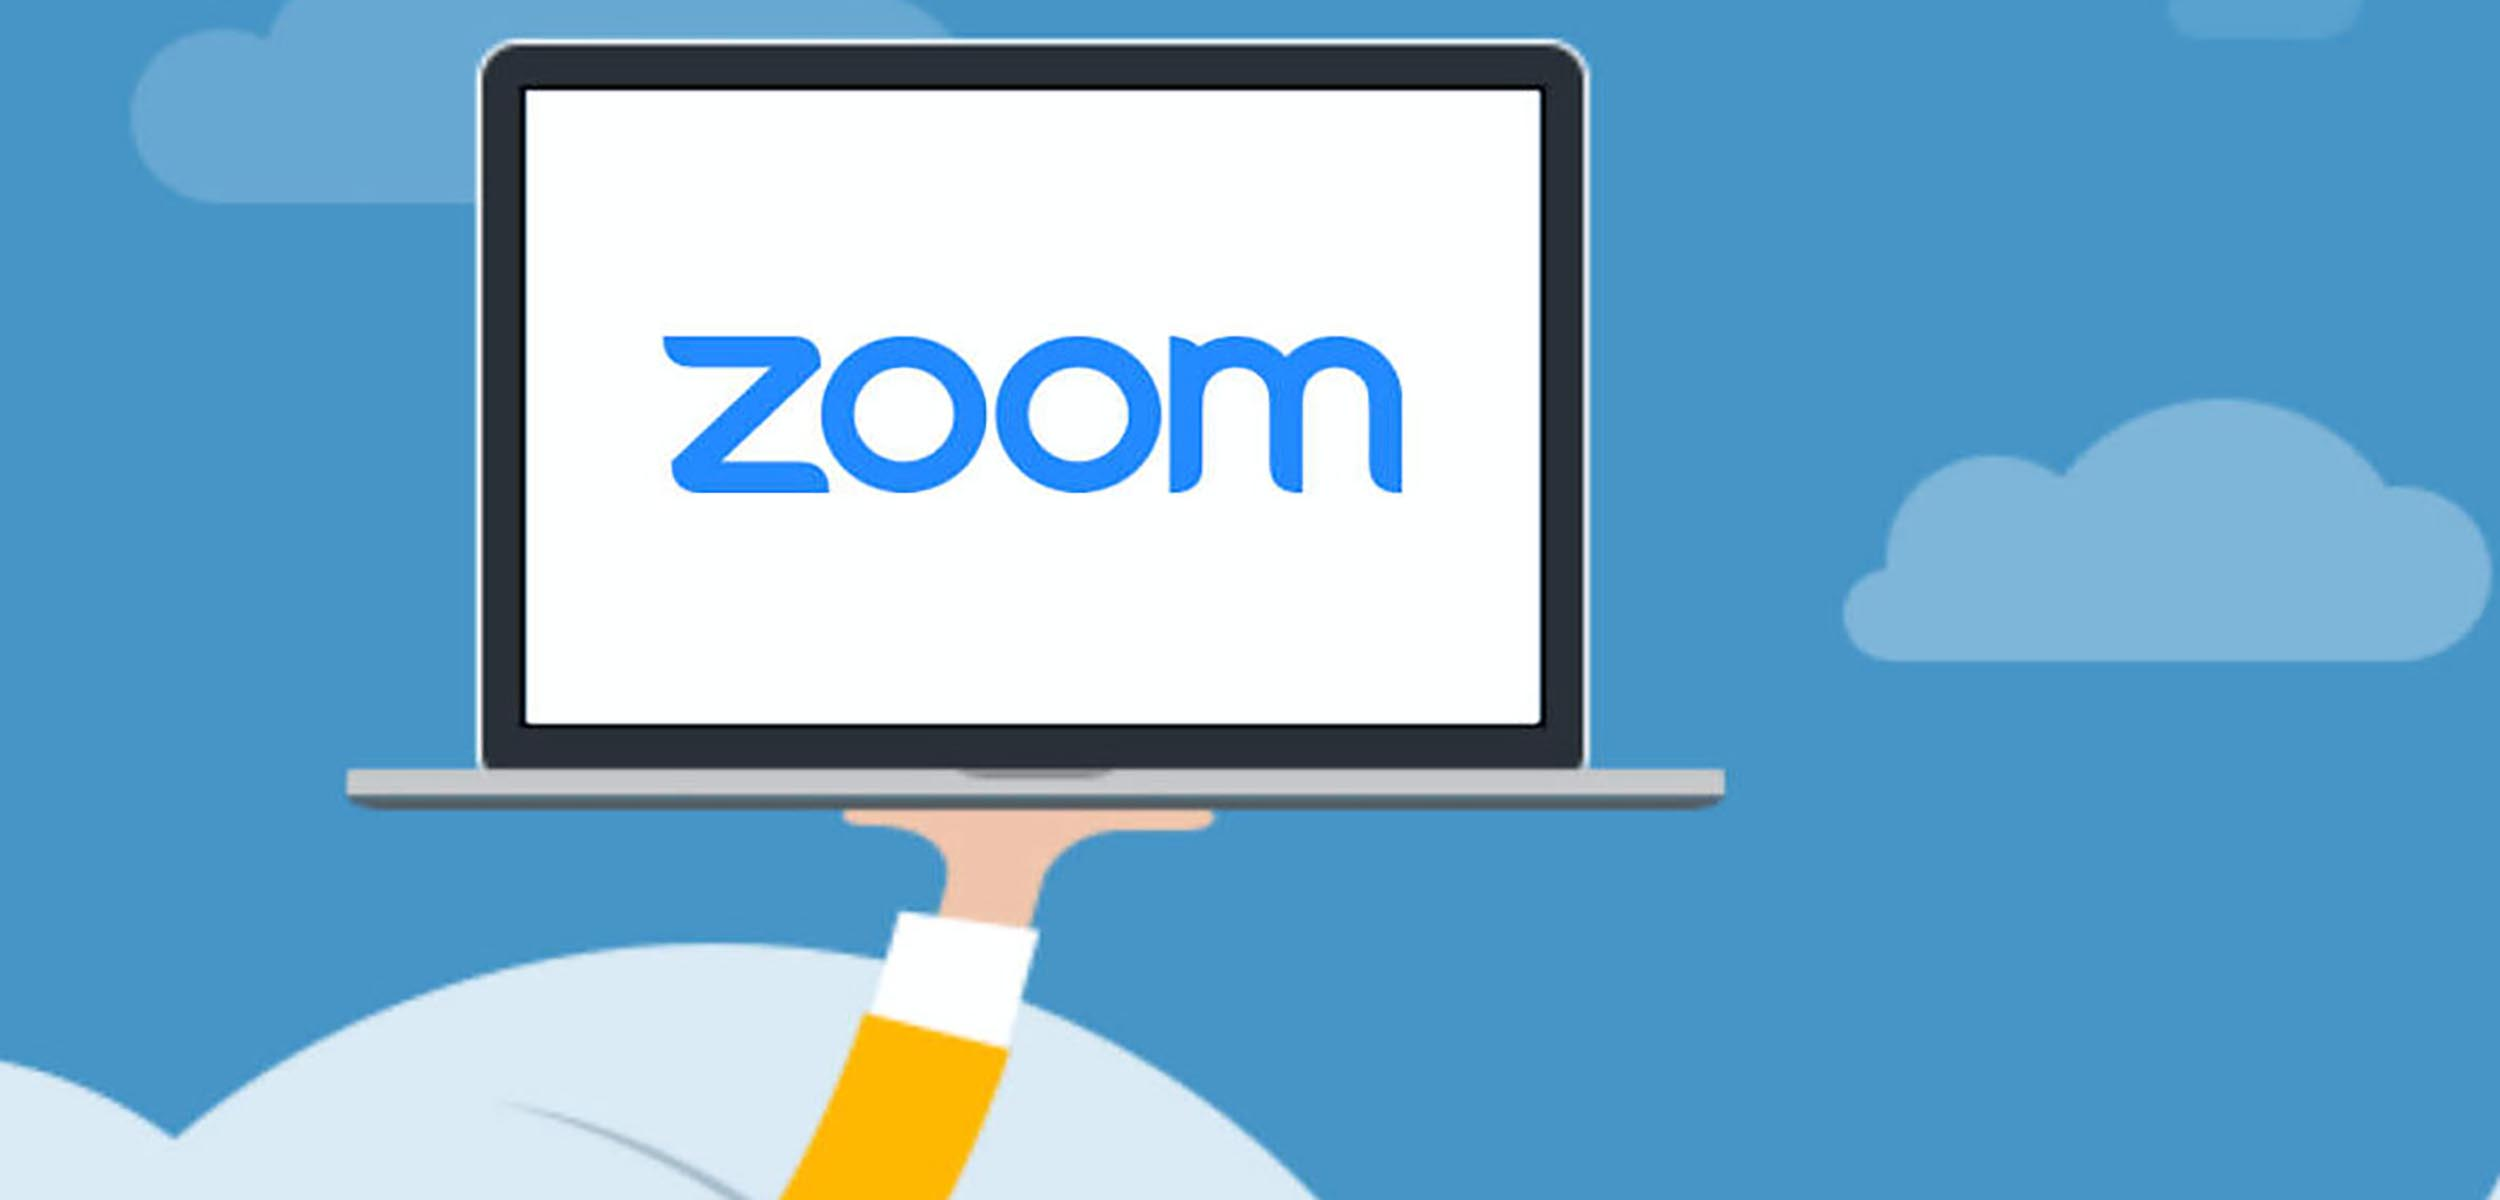 Laptop graphic with Zoom logo